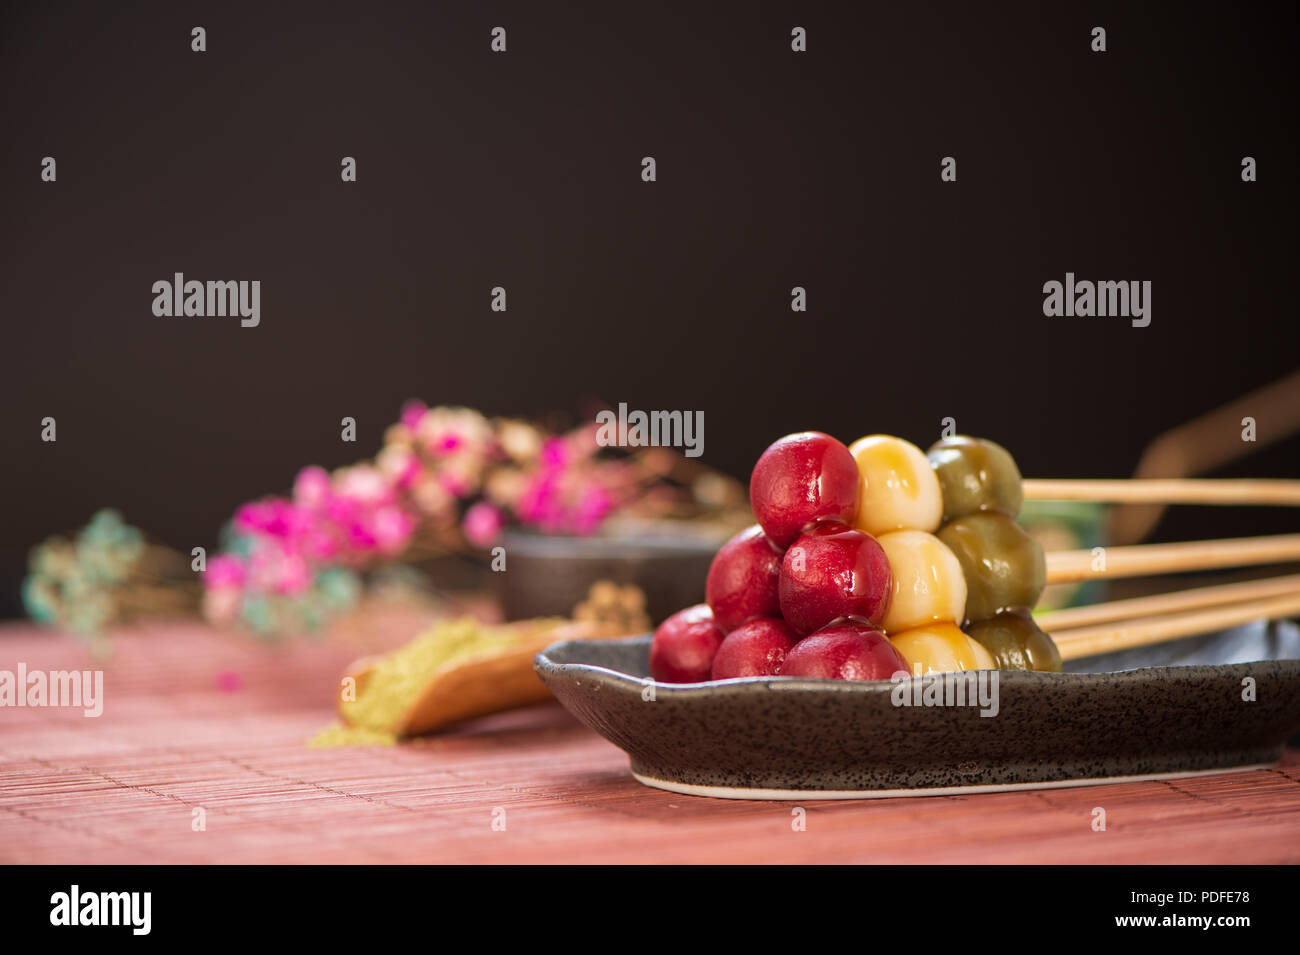 Japanese Dango Dessert With 3 Different Color In Pink Red White And Green Recipe Hanami Dango Tsukimi Dango Copy Space Stock Photo Alamy